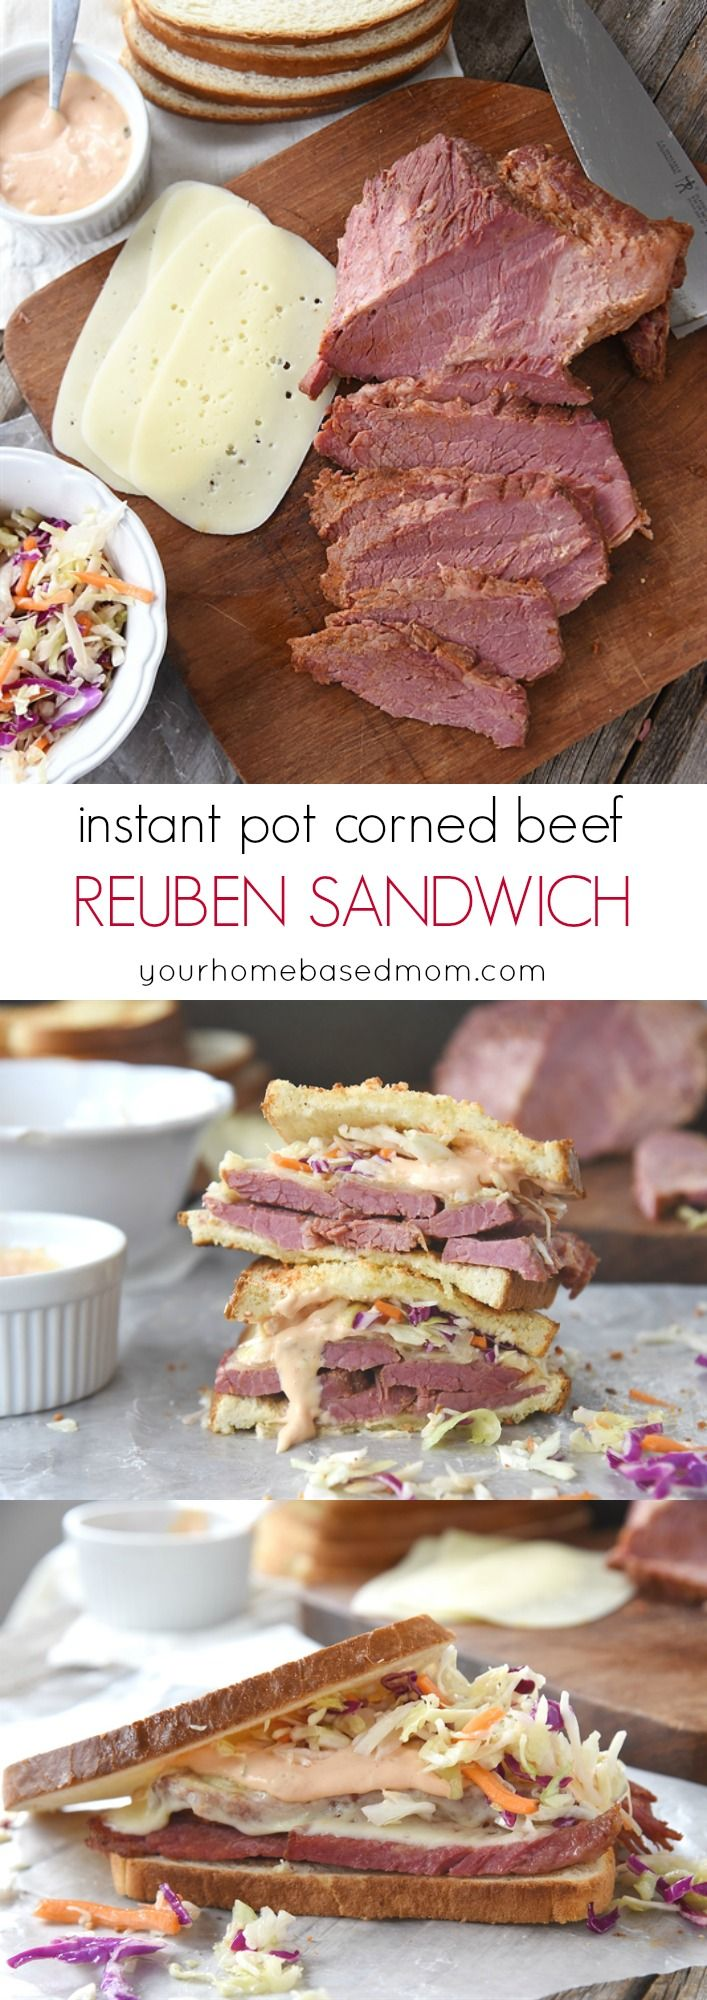 Instant Pot Corned Beef Reuben Sandwiches Recipe - perfect for St. Patrick's Day or any time! (Sandwich Recipes)